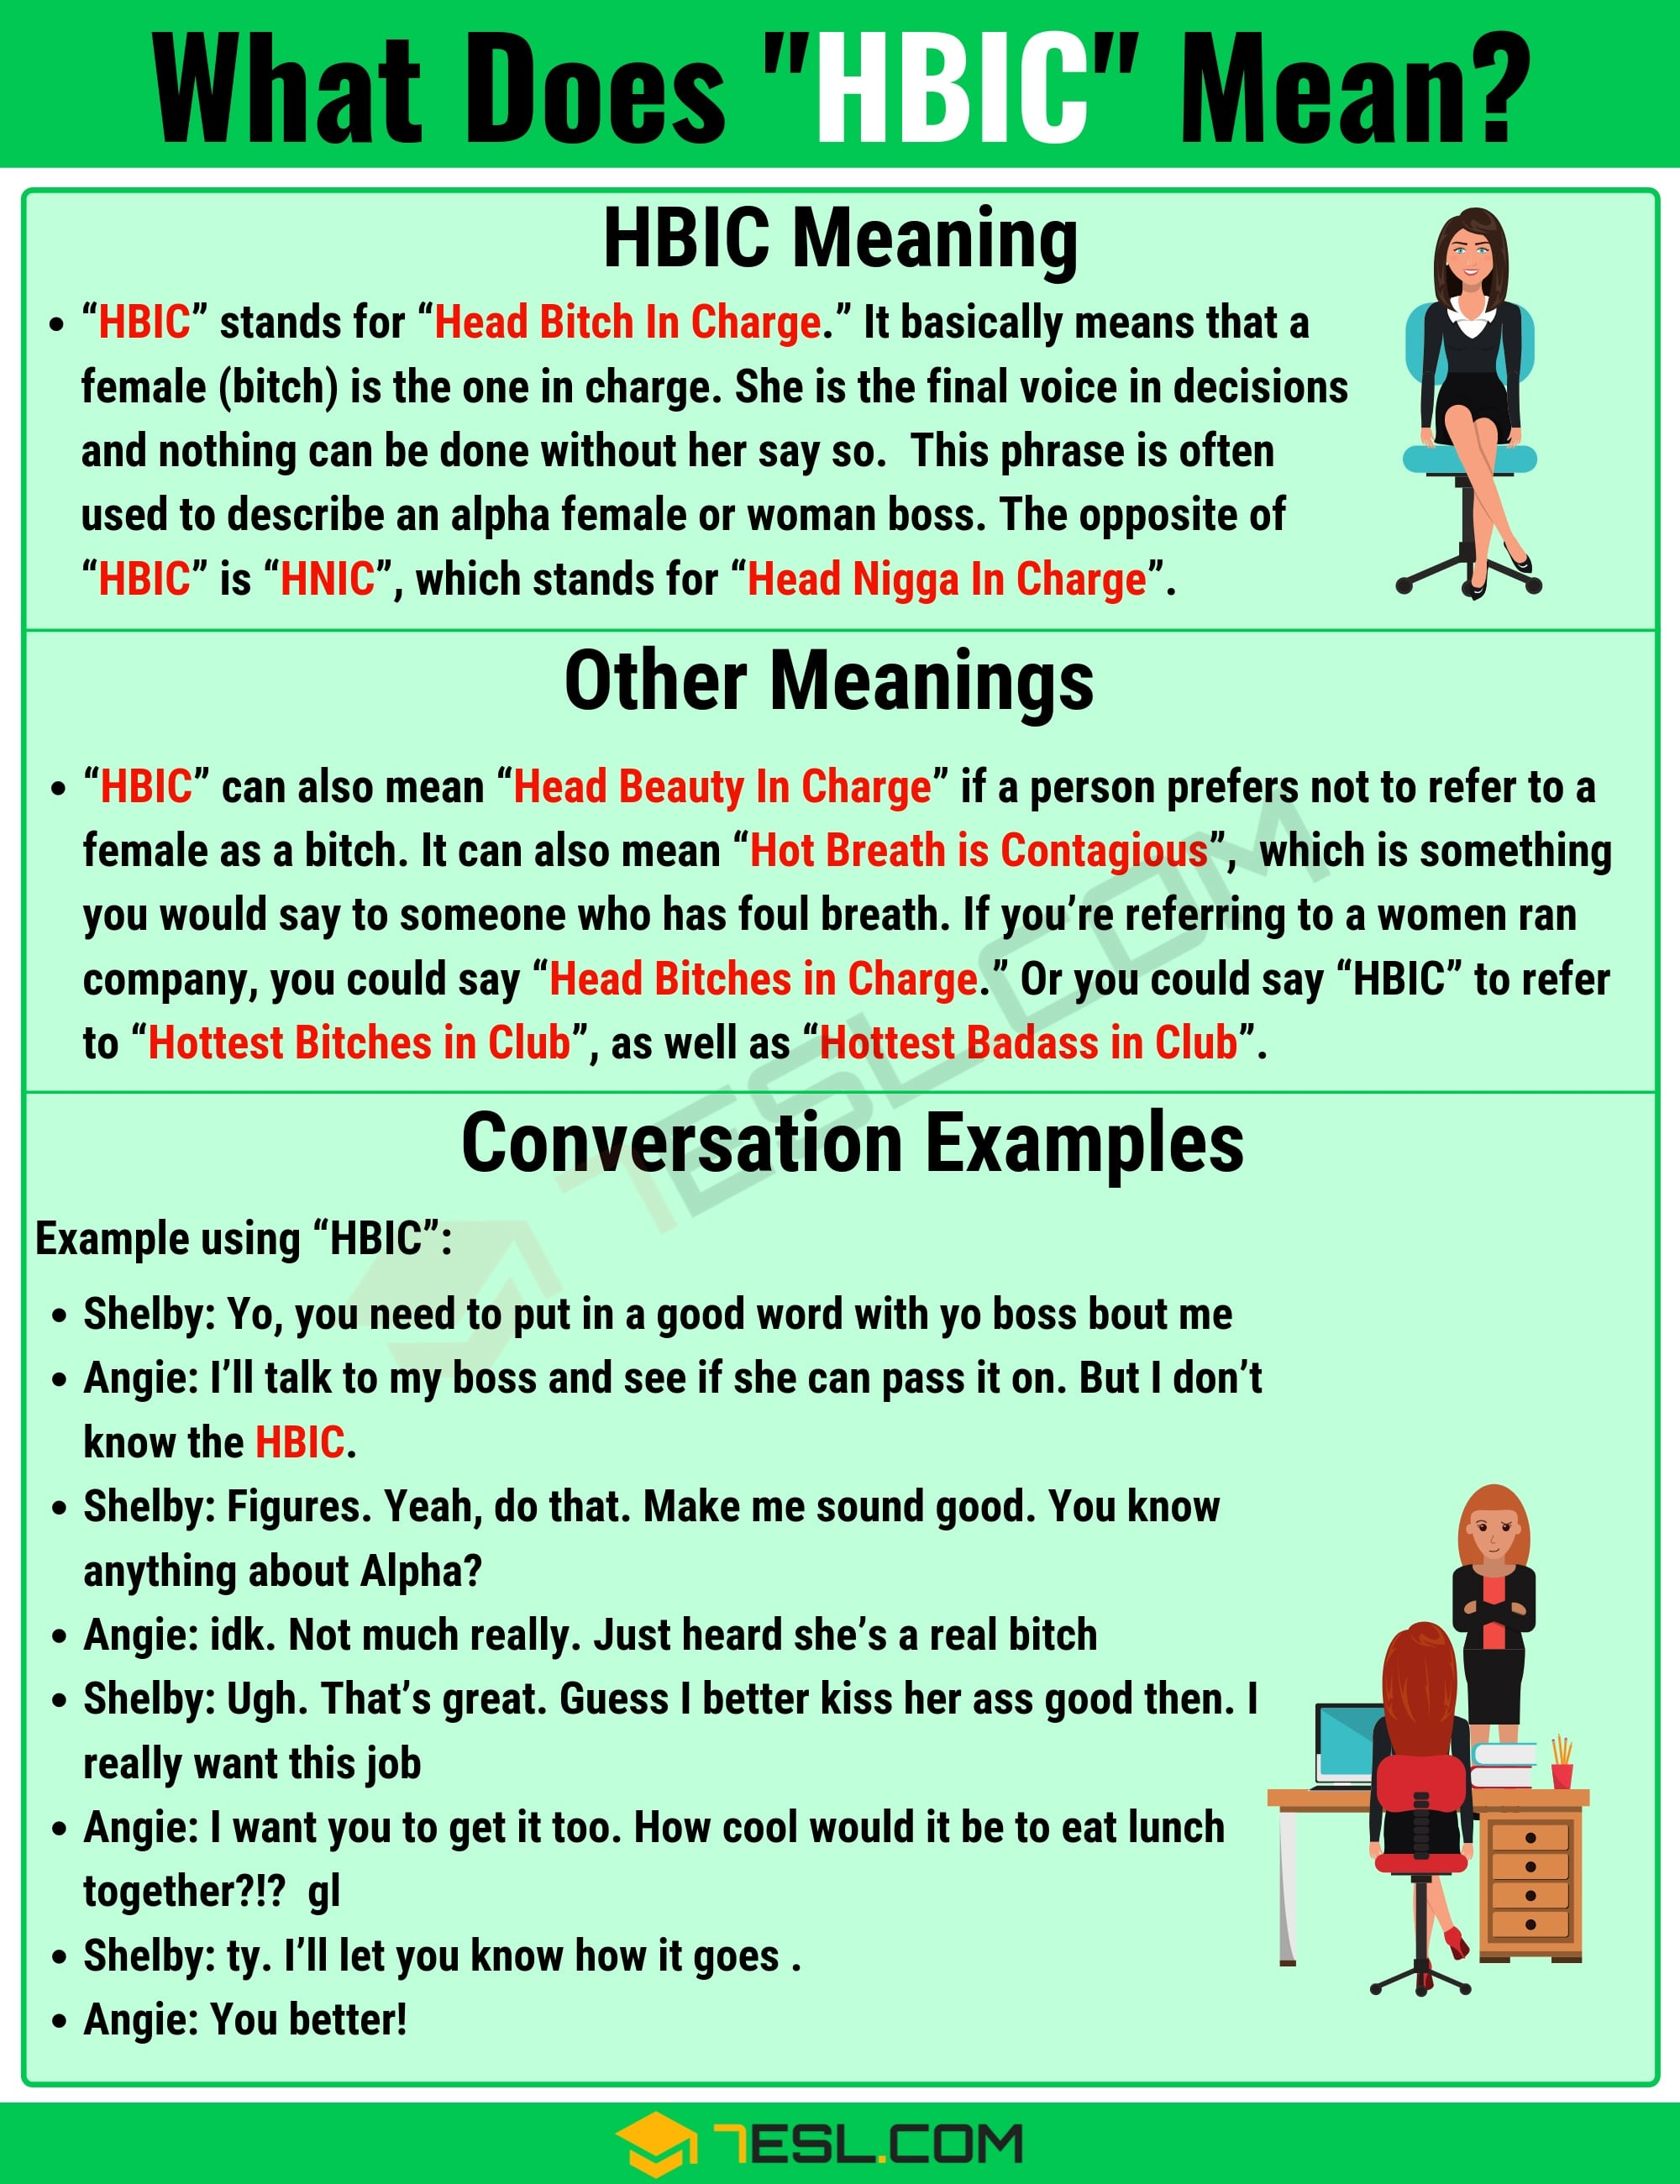 HBIC Meaning: What Does HBIC Mean? with Useful Examples 2